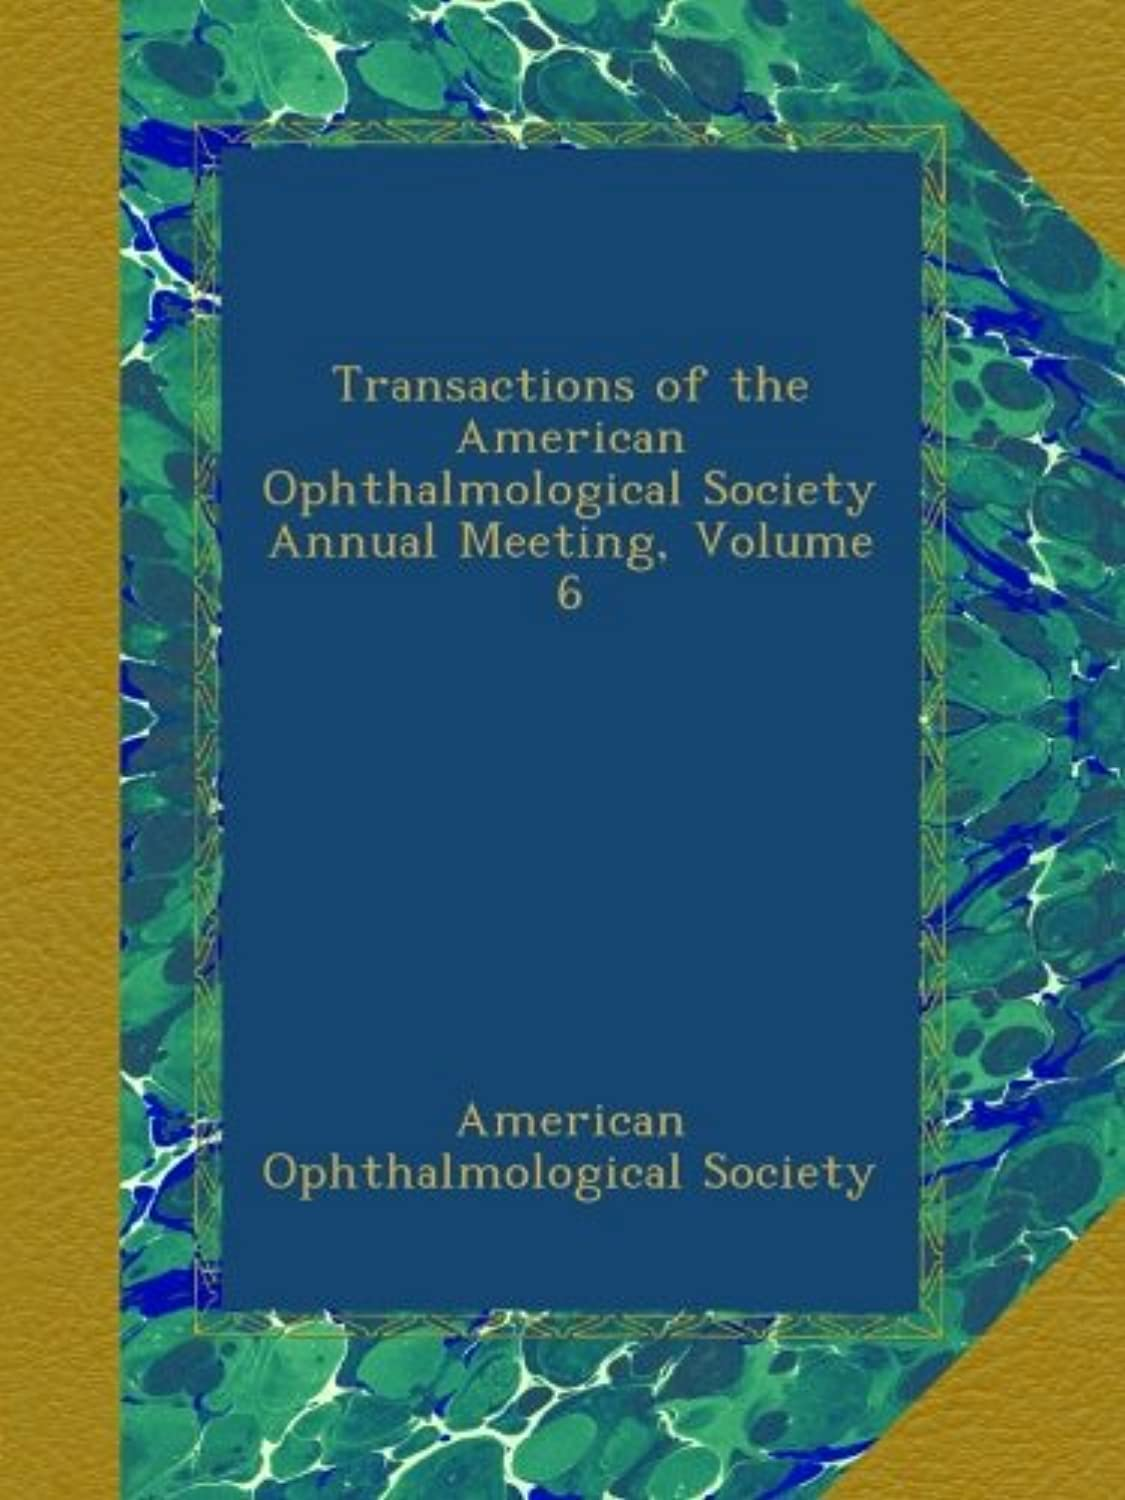 Transactions of the American Ophthalmological Society Annual Meeting, Volume 6